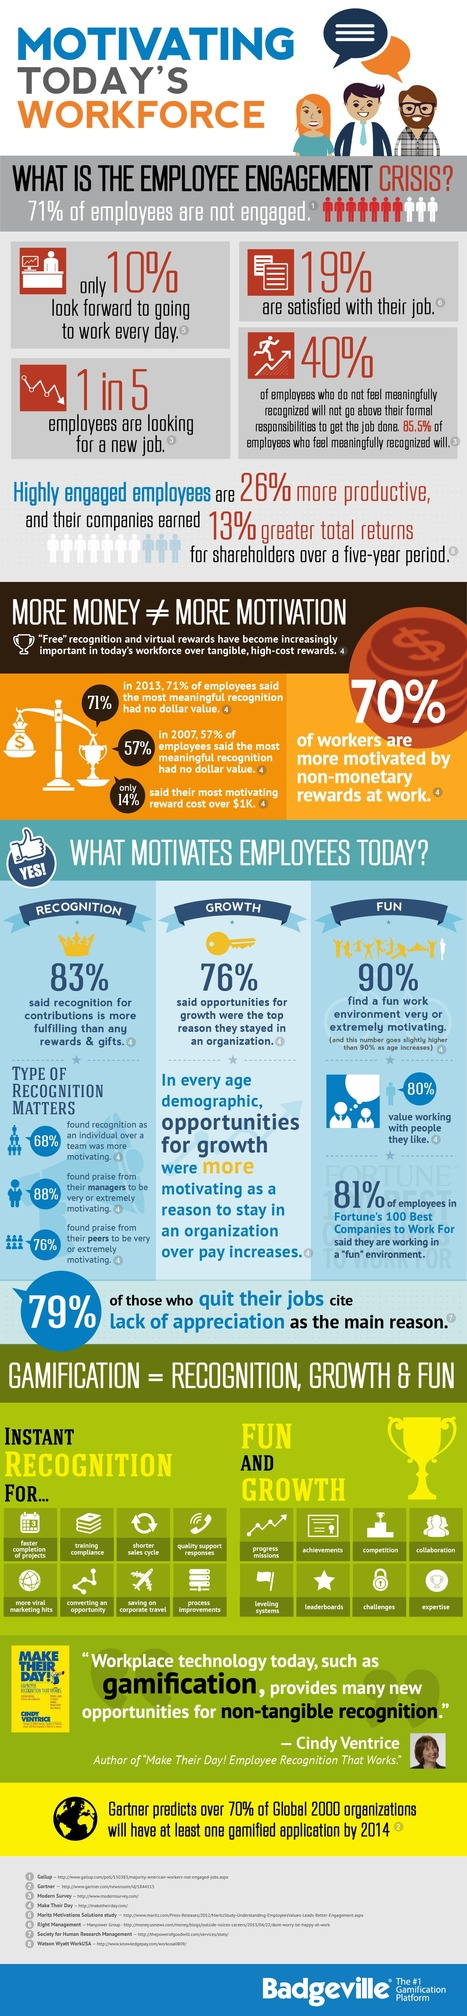 INFOGRAPHIC: What Is The Employee Engagement Crisis? | e-governance solutions | Scoop.it